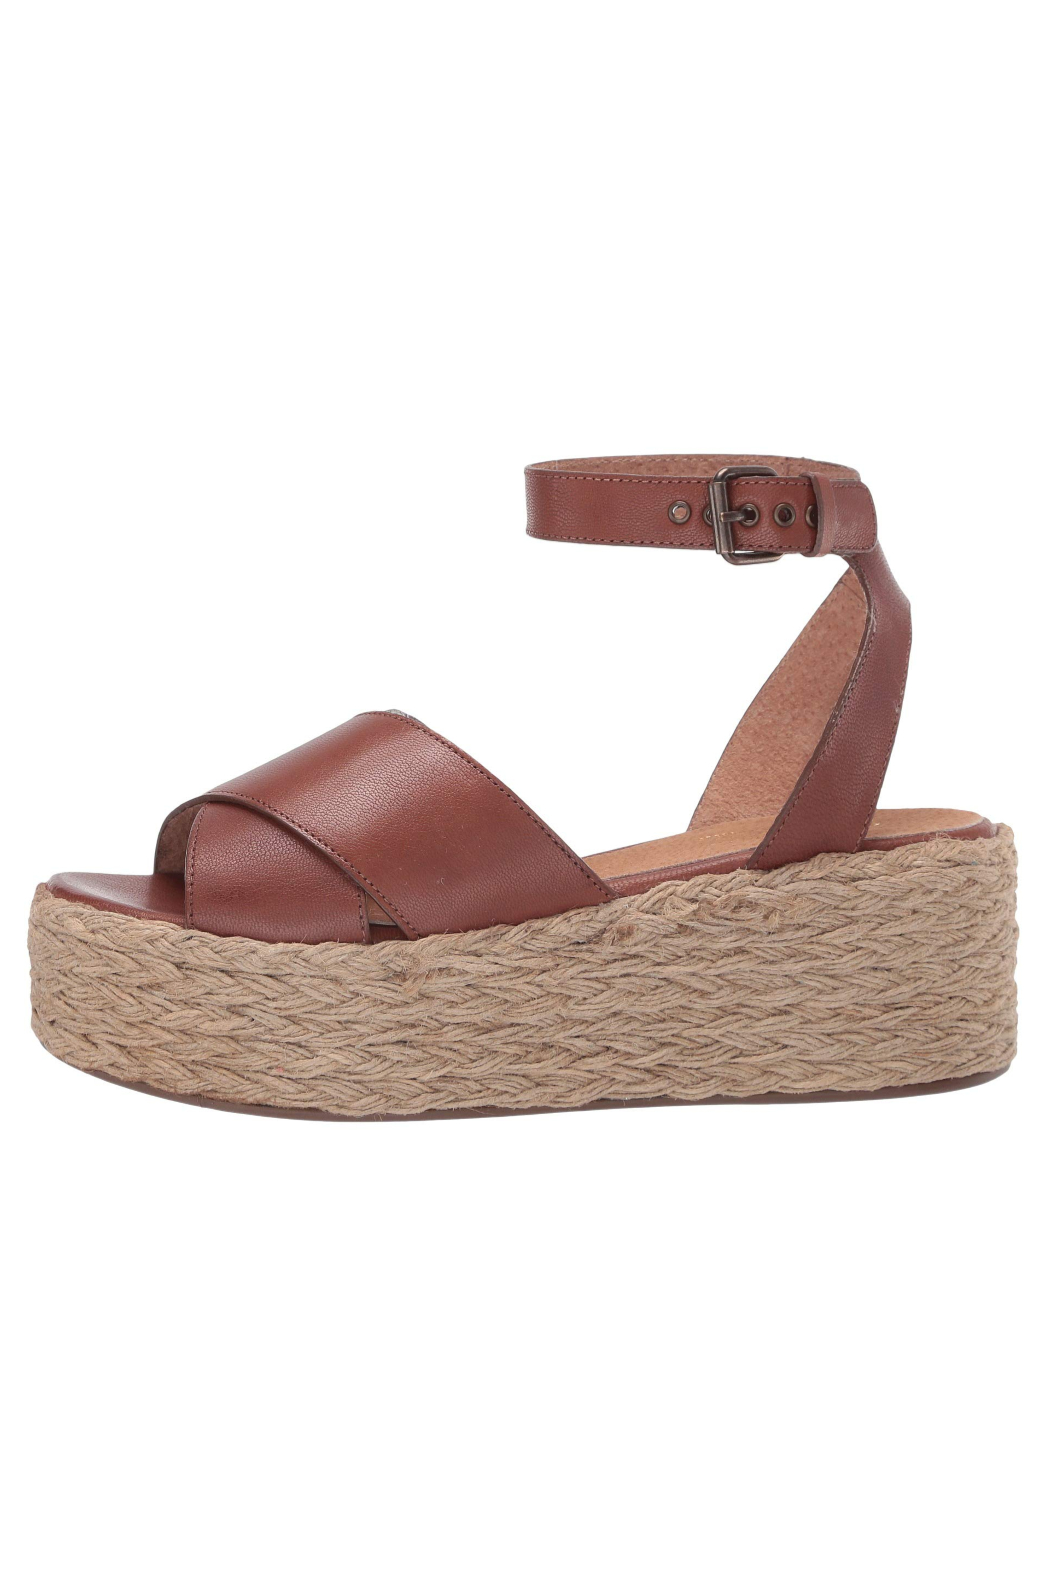 Seychelles Much Publicized Flatform - Front Cropped Image